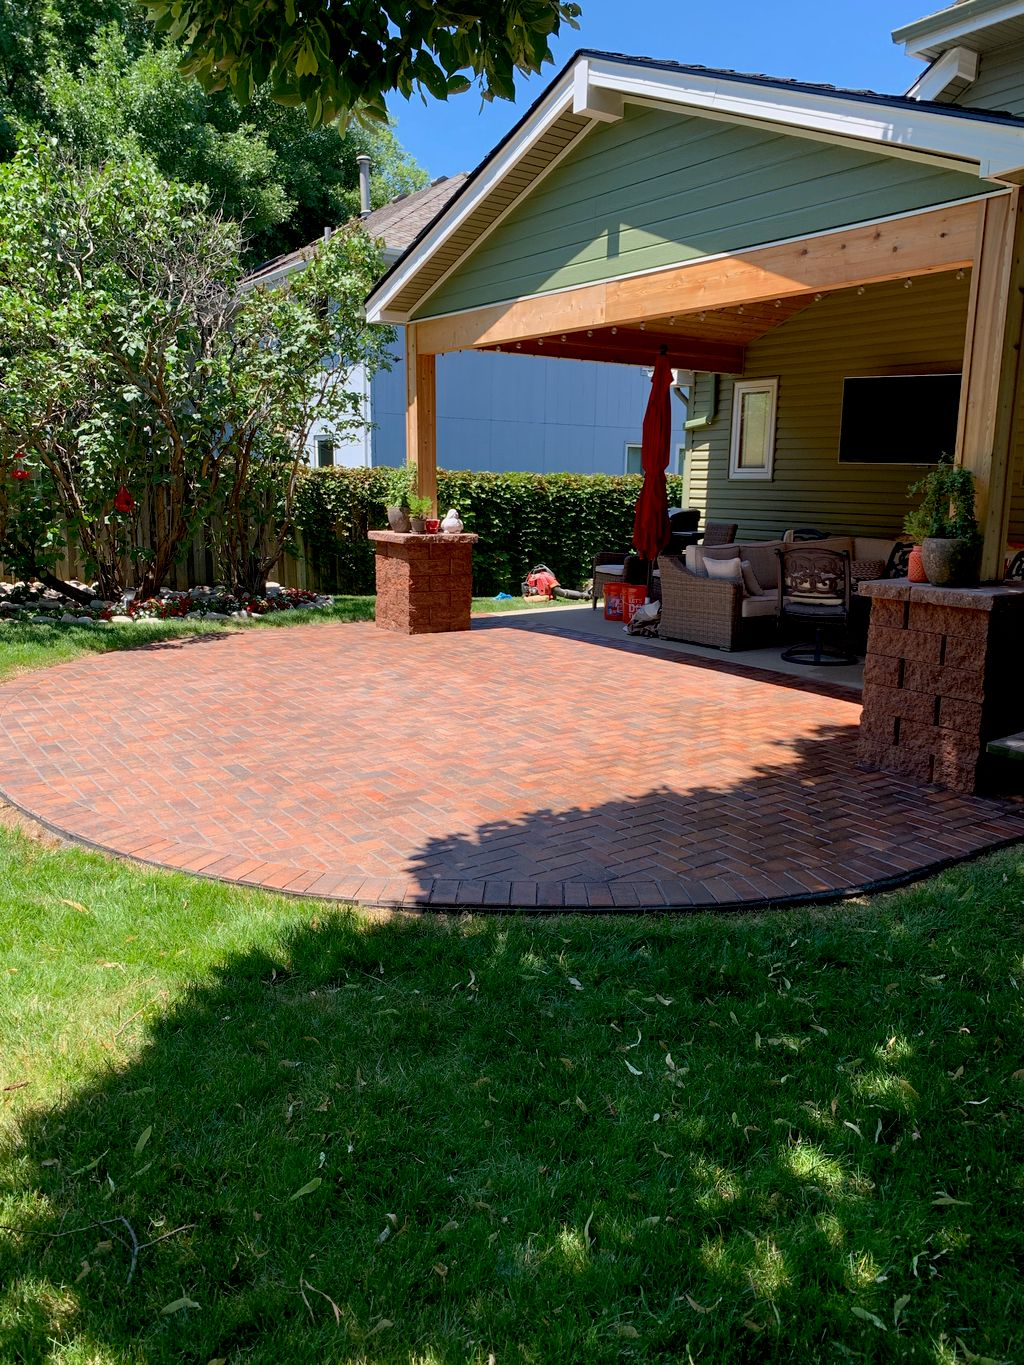 Holland Paver Patio with Columns